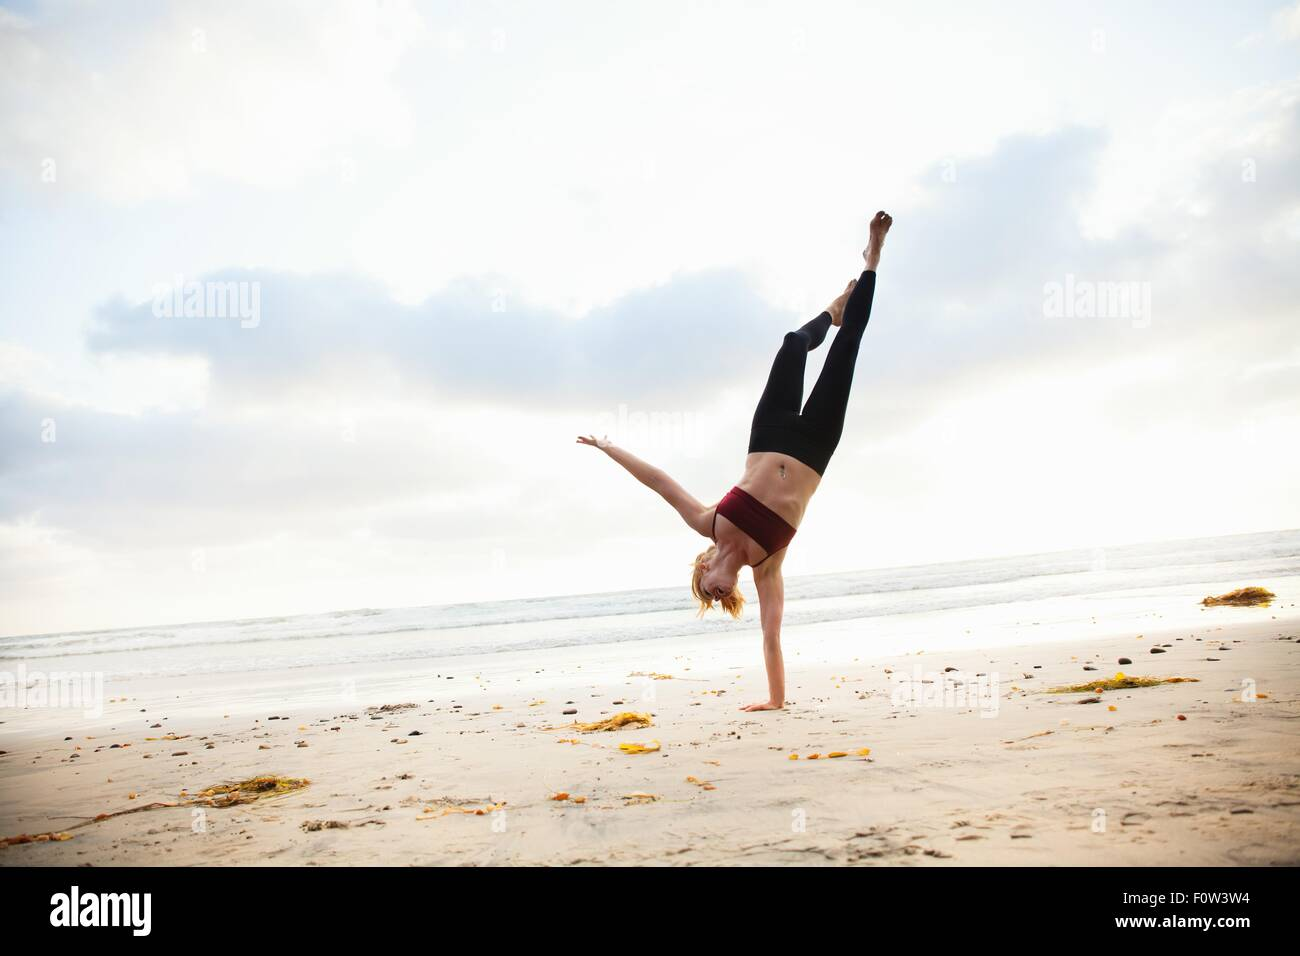 Mid adult woman practicing yoga position on beach - Stock Image